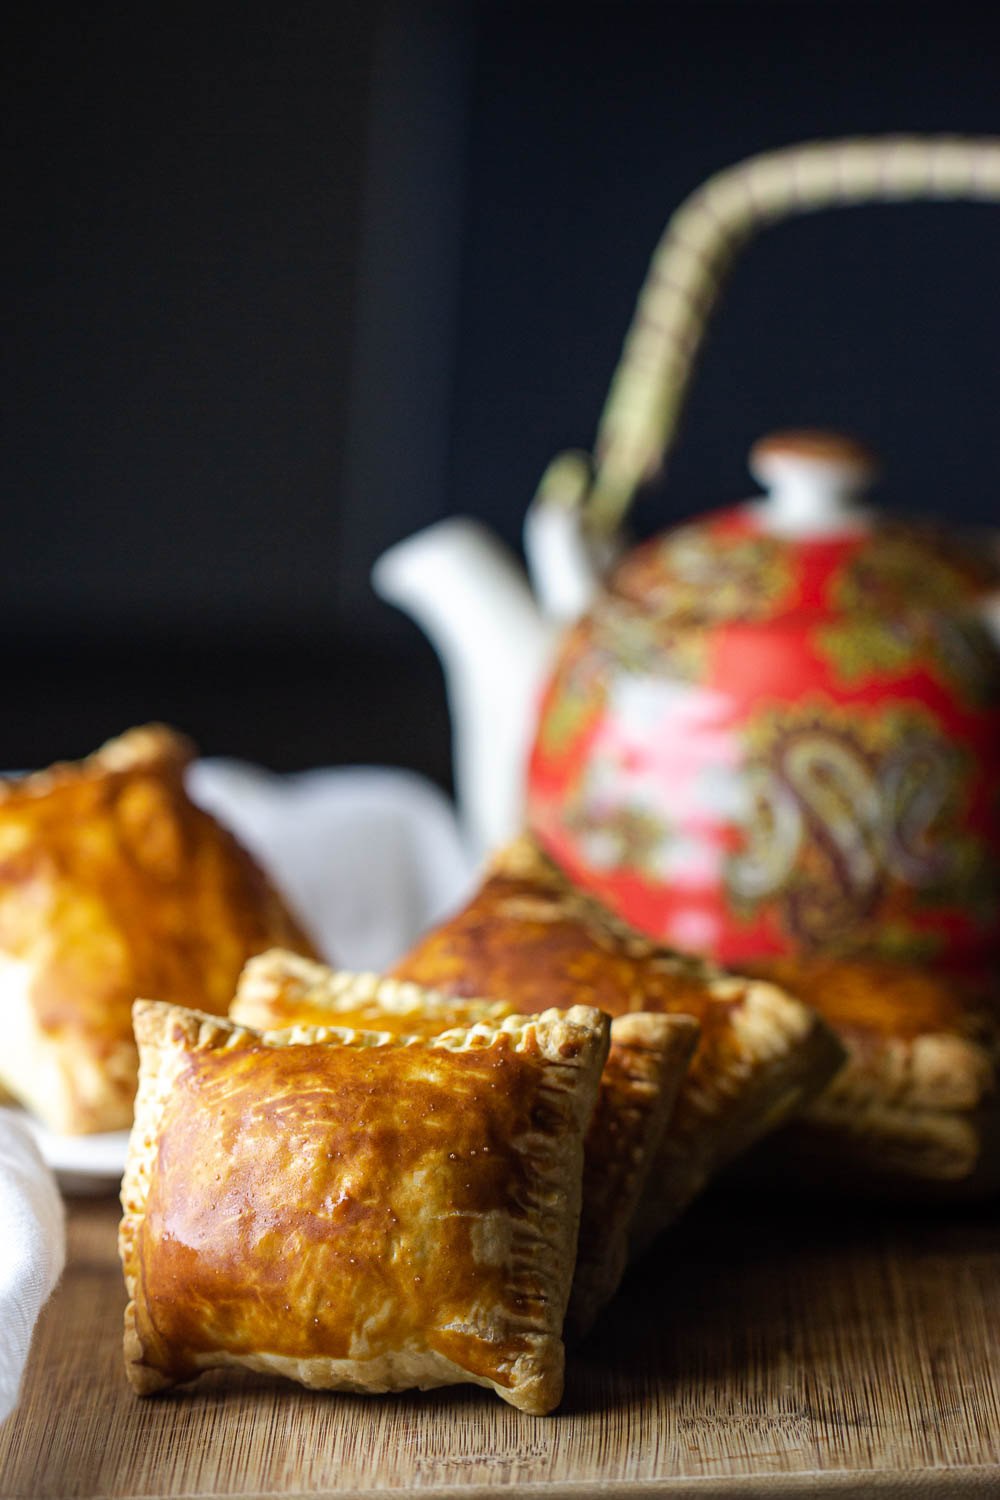 Siblings to samosas, each of these delicious baked Beef Curry Puff is wrapped in golden flaky pastry. The hardest thing about making this is not eating everything before the guests arrive.